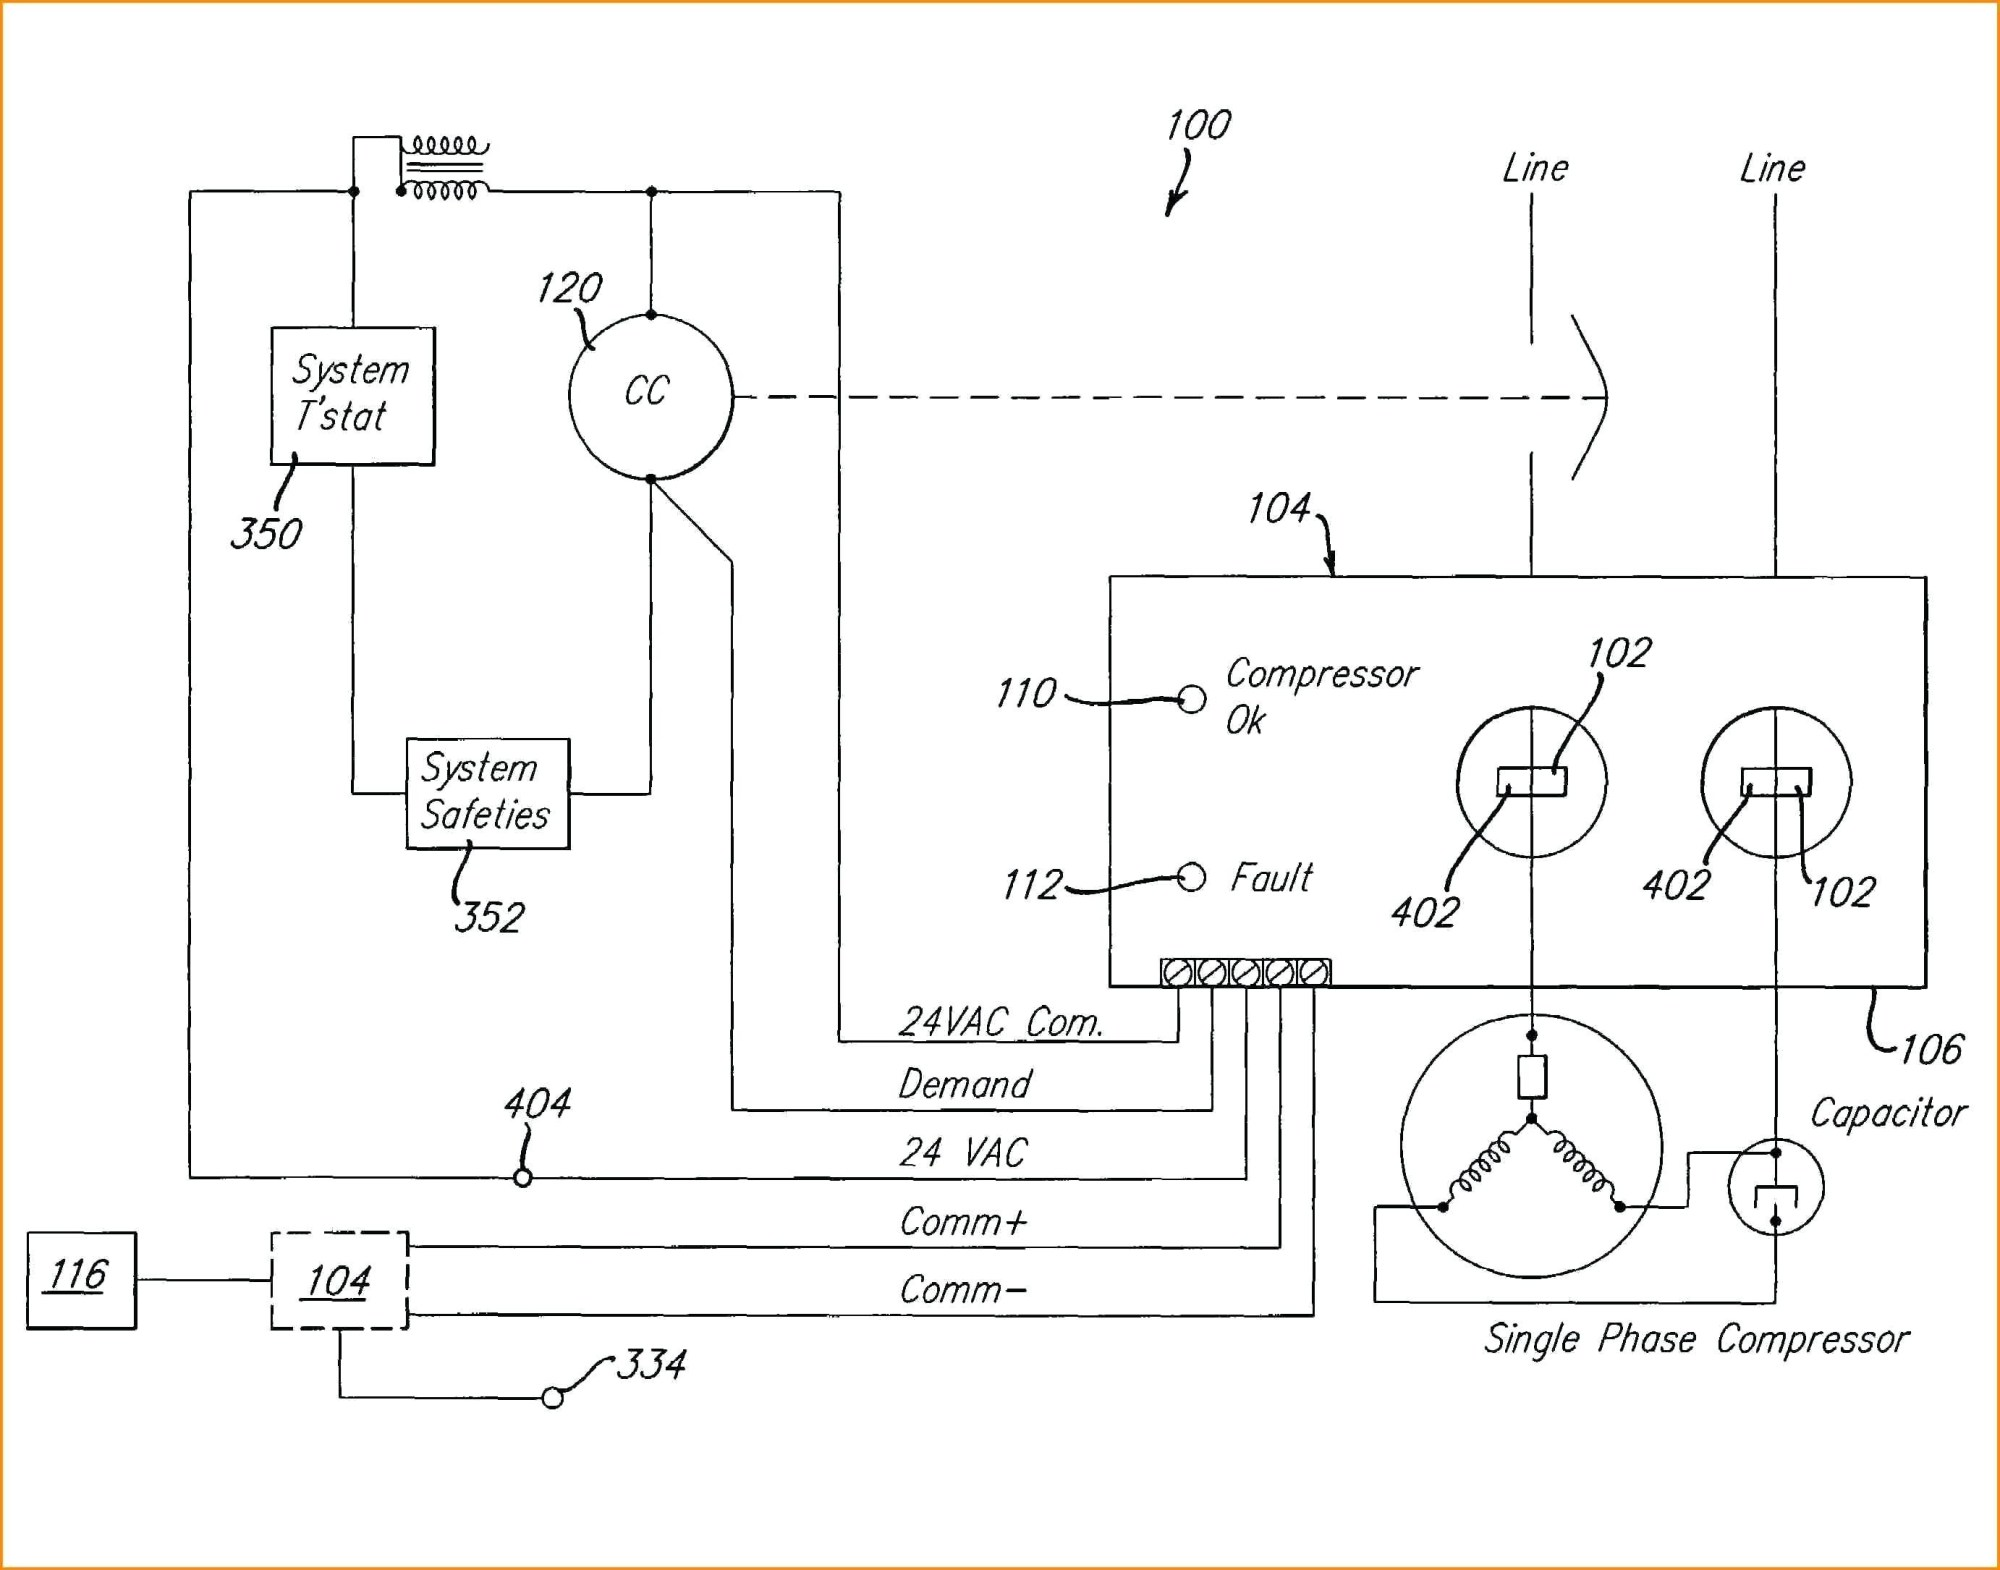 hight resolution of air compressor 230v wiring diagram diagram data schema exp 230v 1 phase wiring diagram